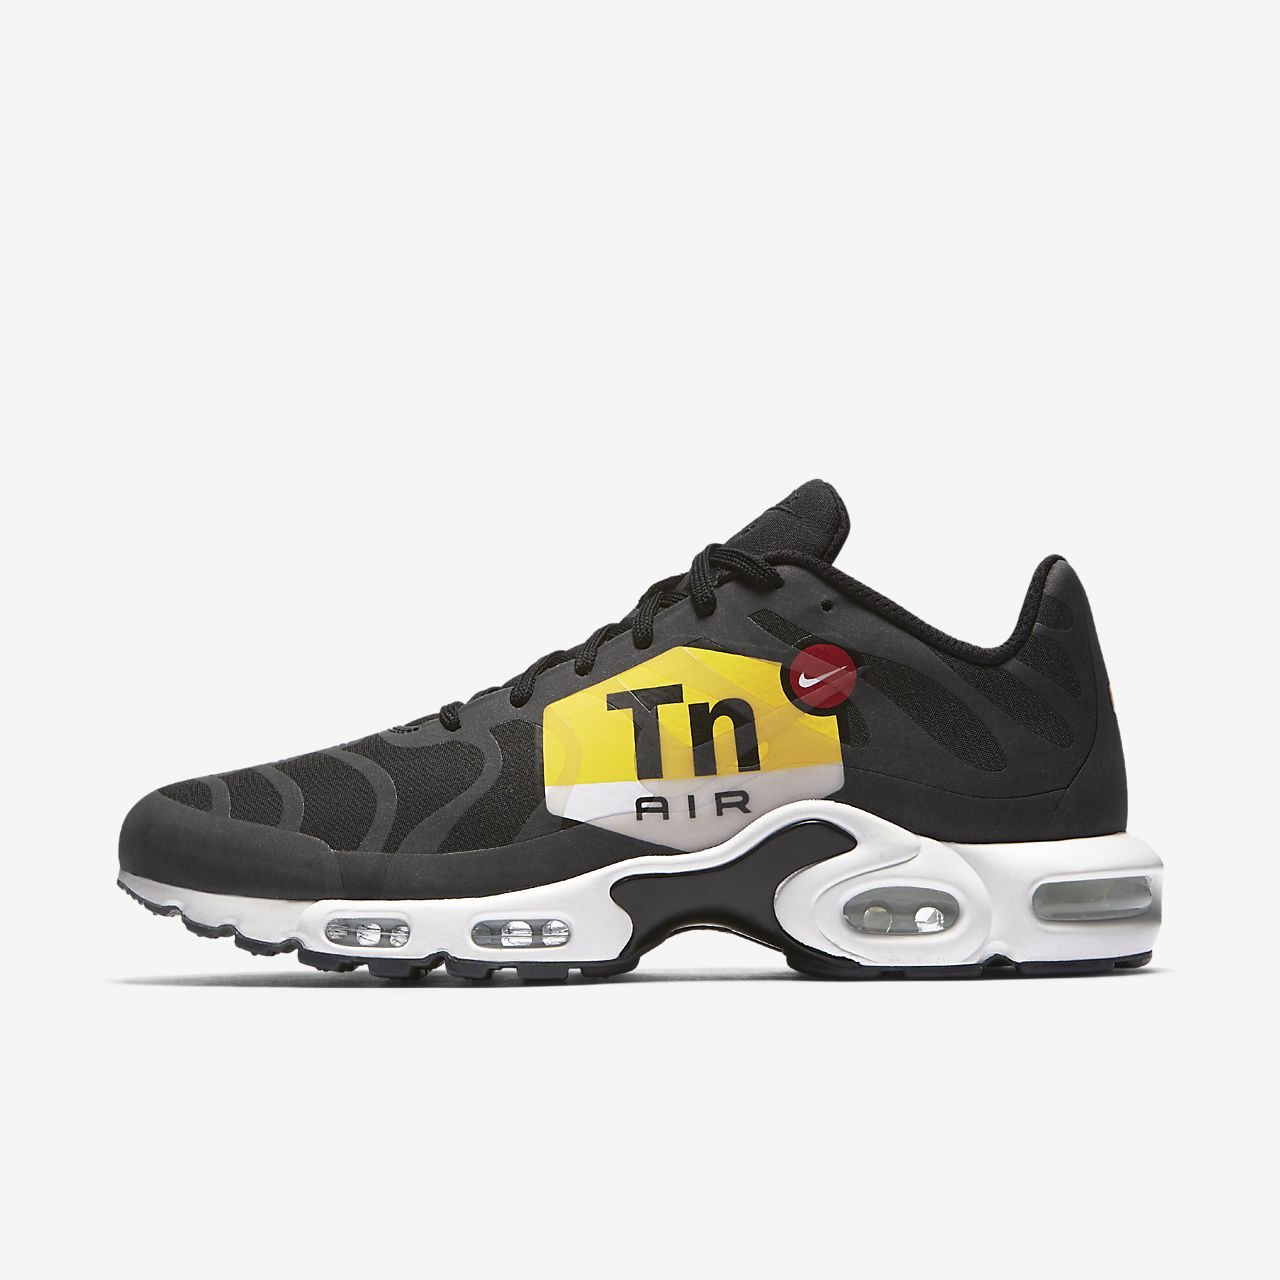 zapatillas nike tn air max